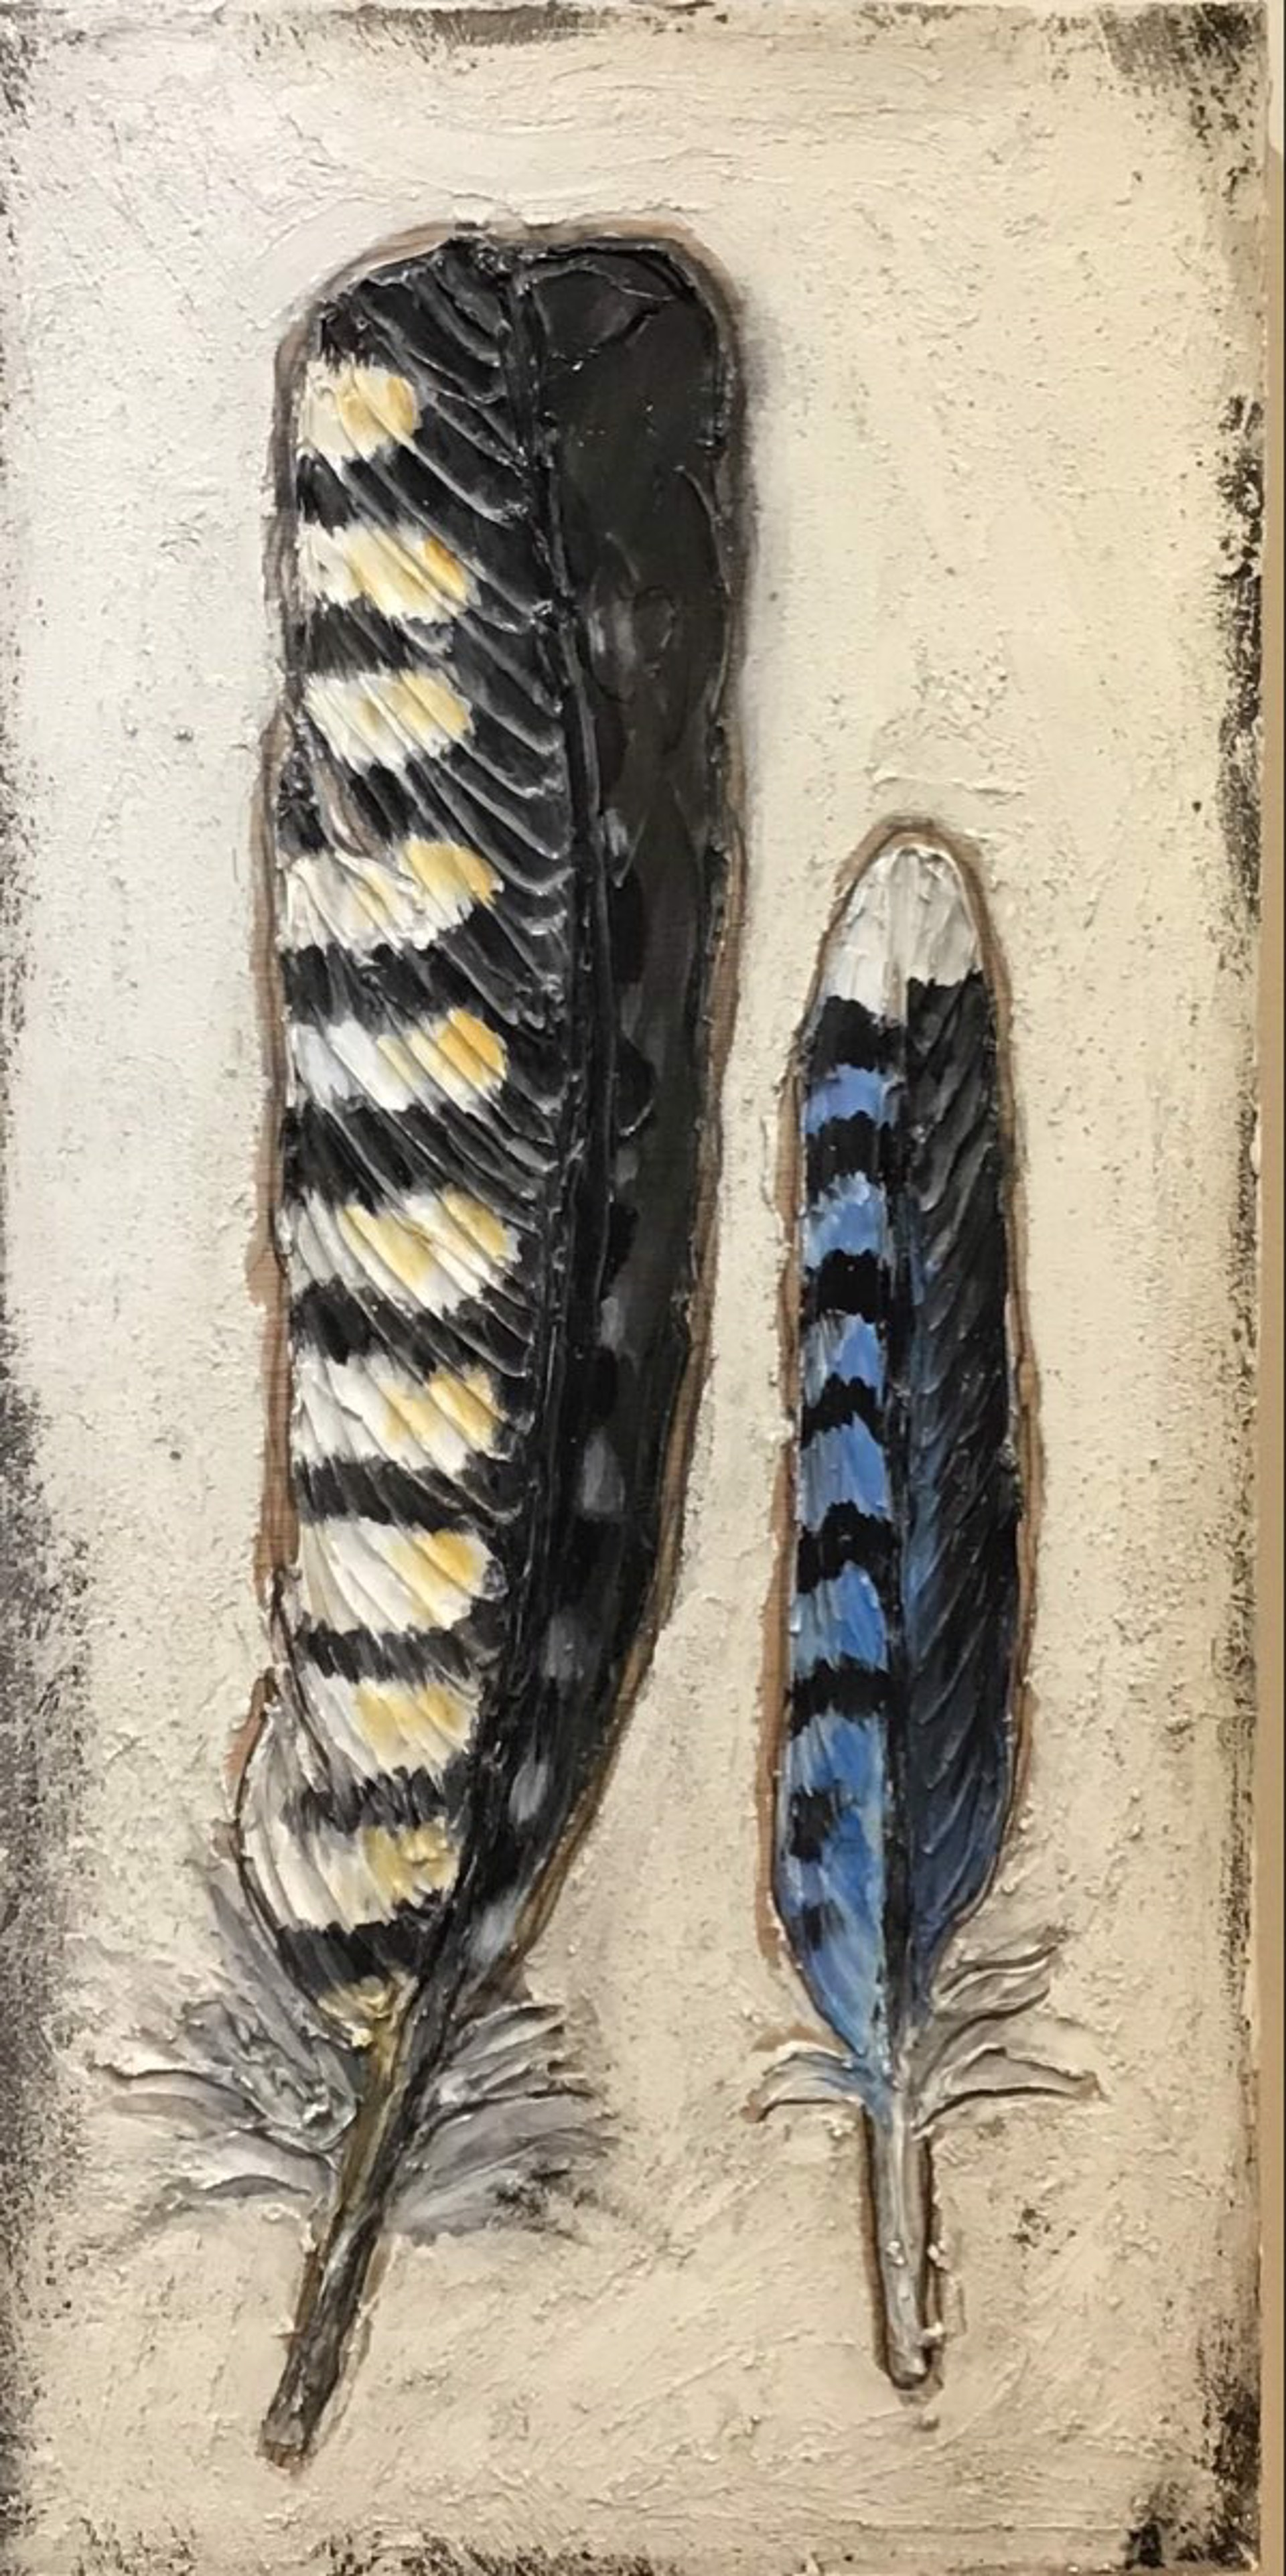 Blue Jay & Woodpecker Feathers by Sherry Cook